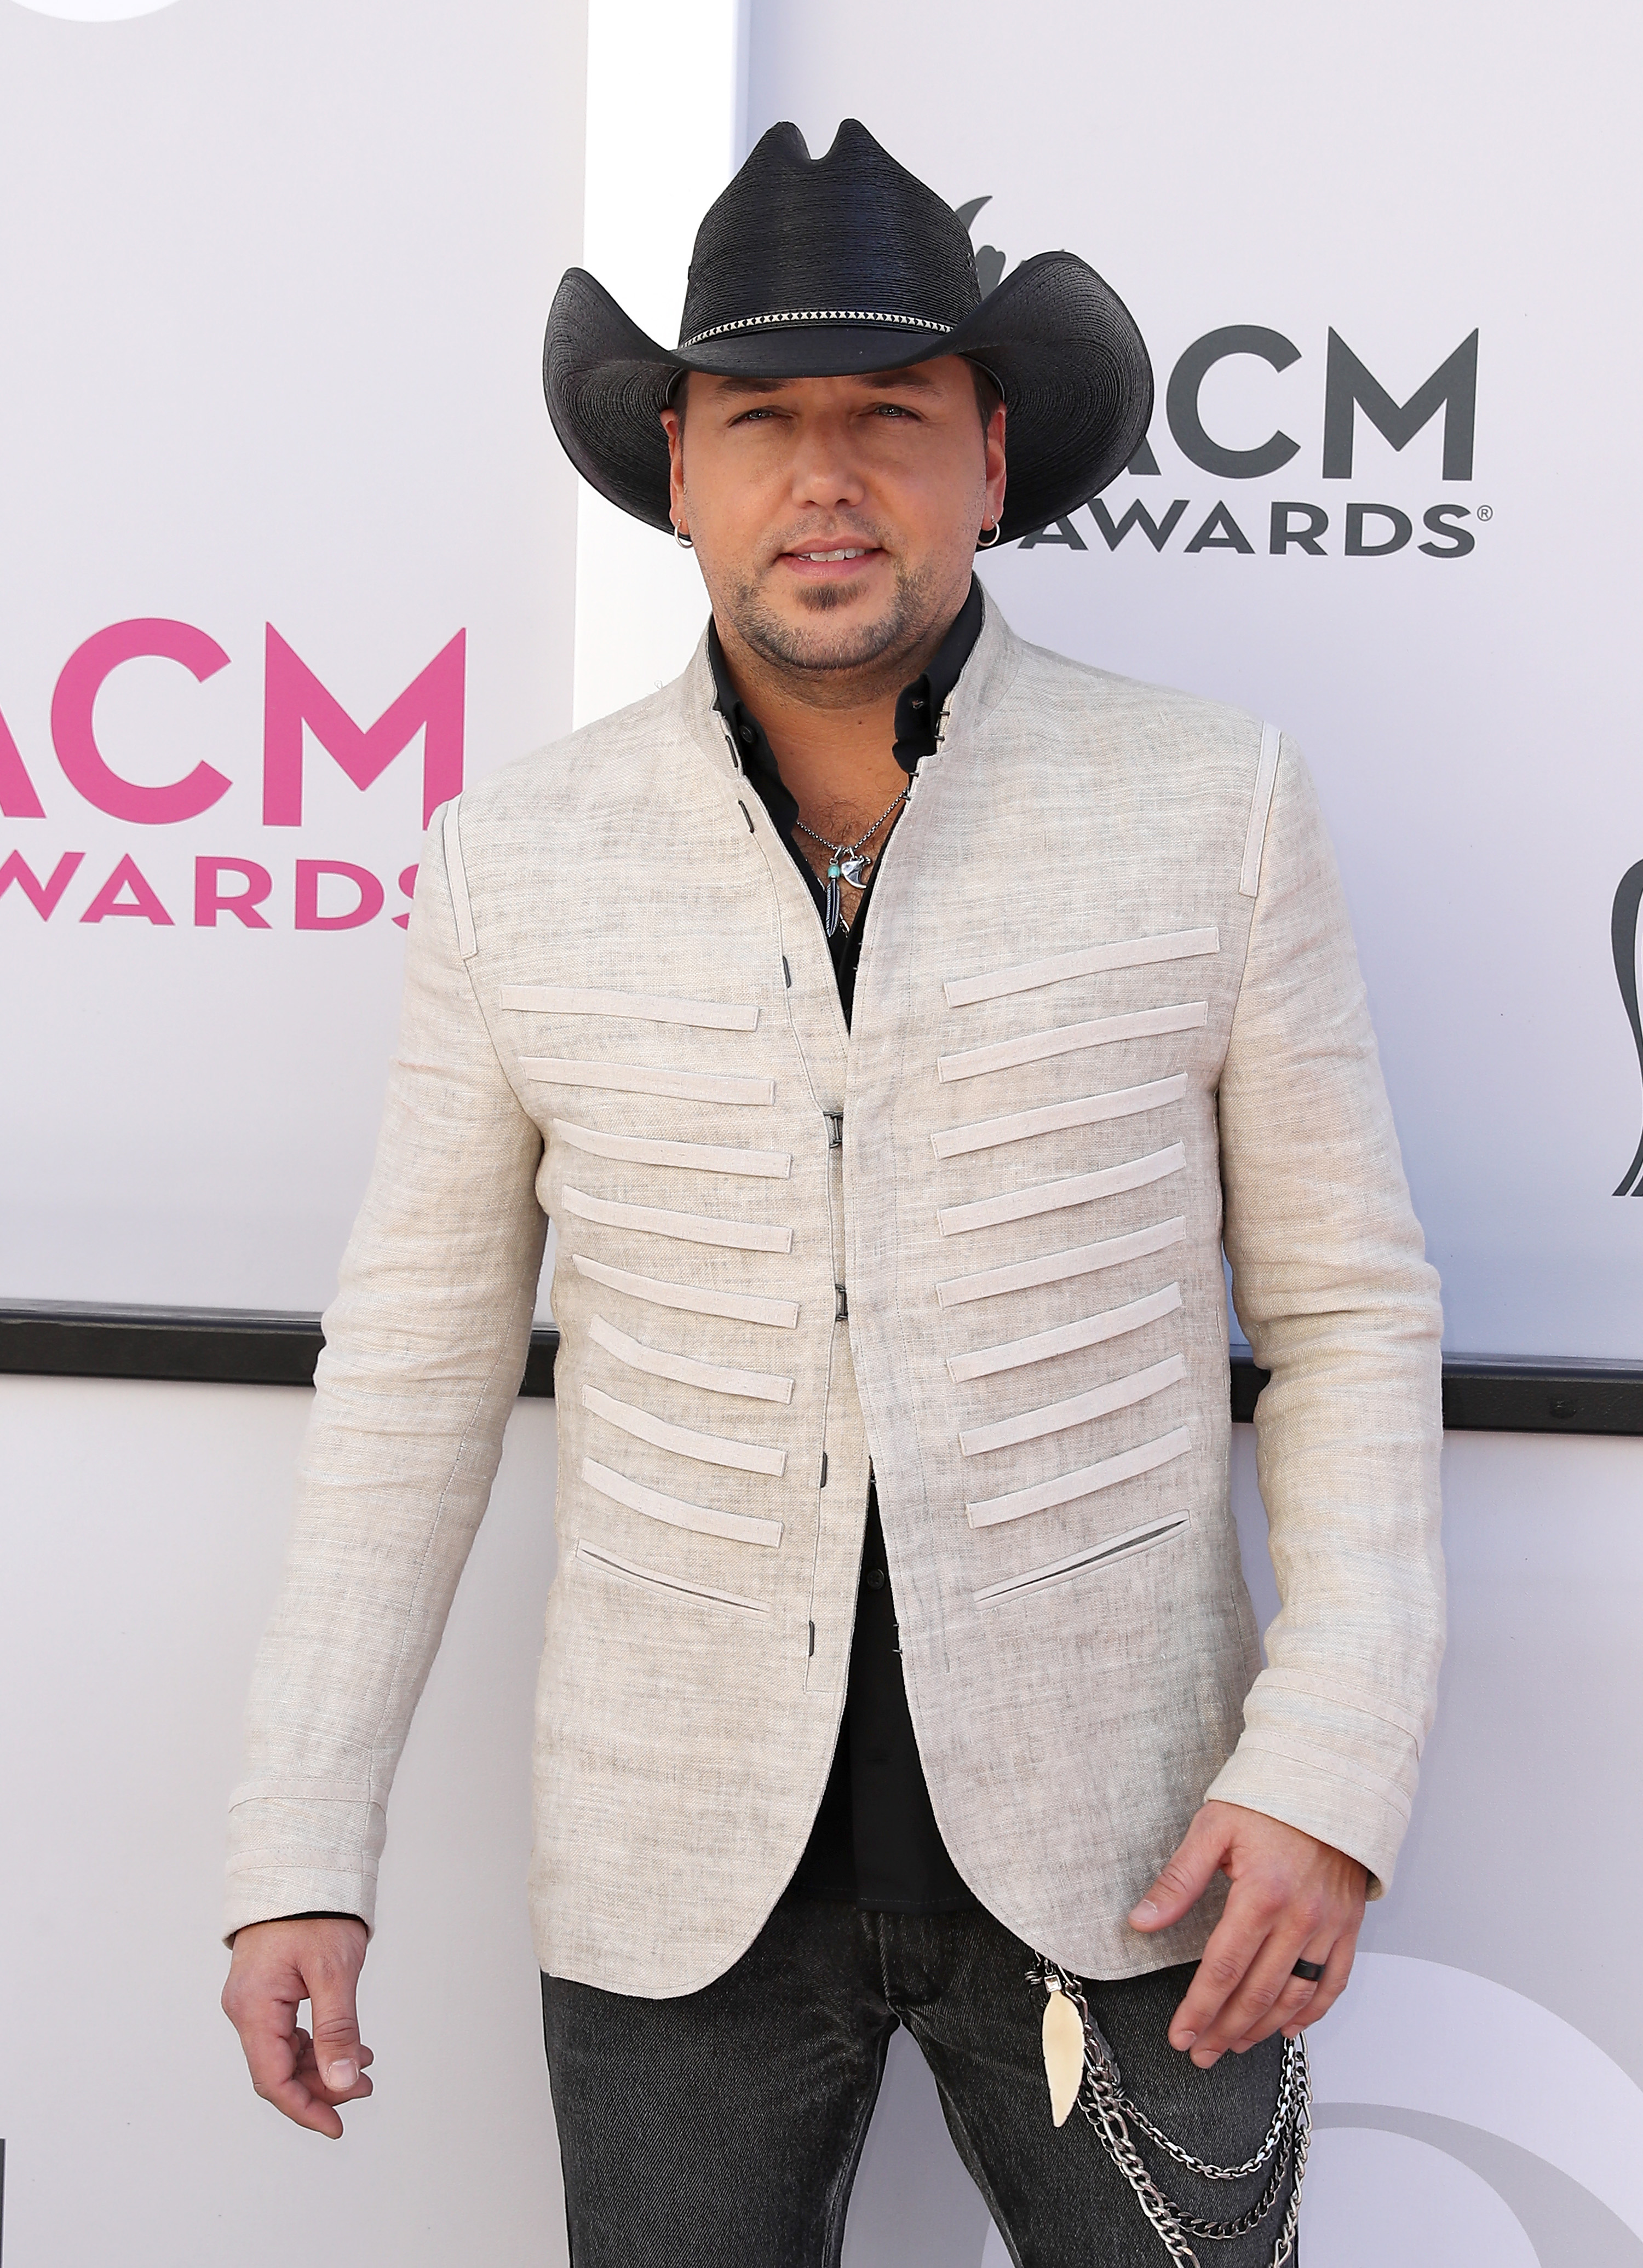 52nd Academy of Country Music Awards Arrivals at T-Mobile Arena Las Vegas                                    Featuring: Jason Aldean                  Where: Las Vegas, Nevada, United States                  When: 02 Apr 2017                  Credit: Judy Eddy/WENN.com